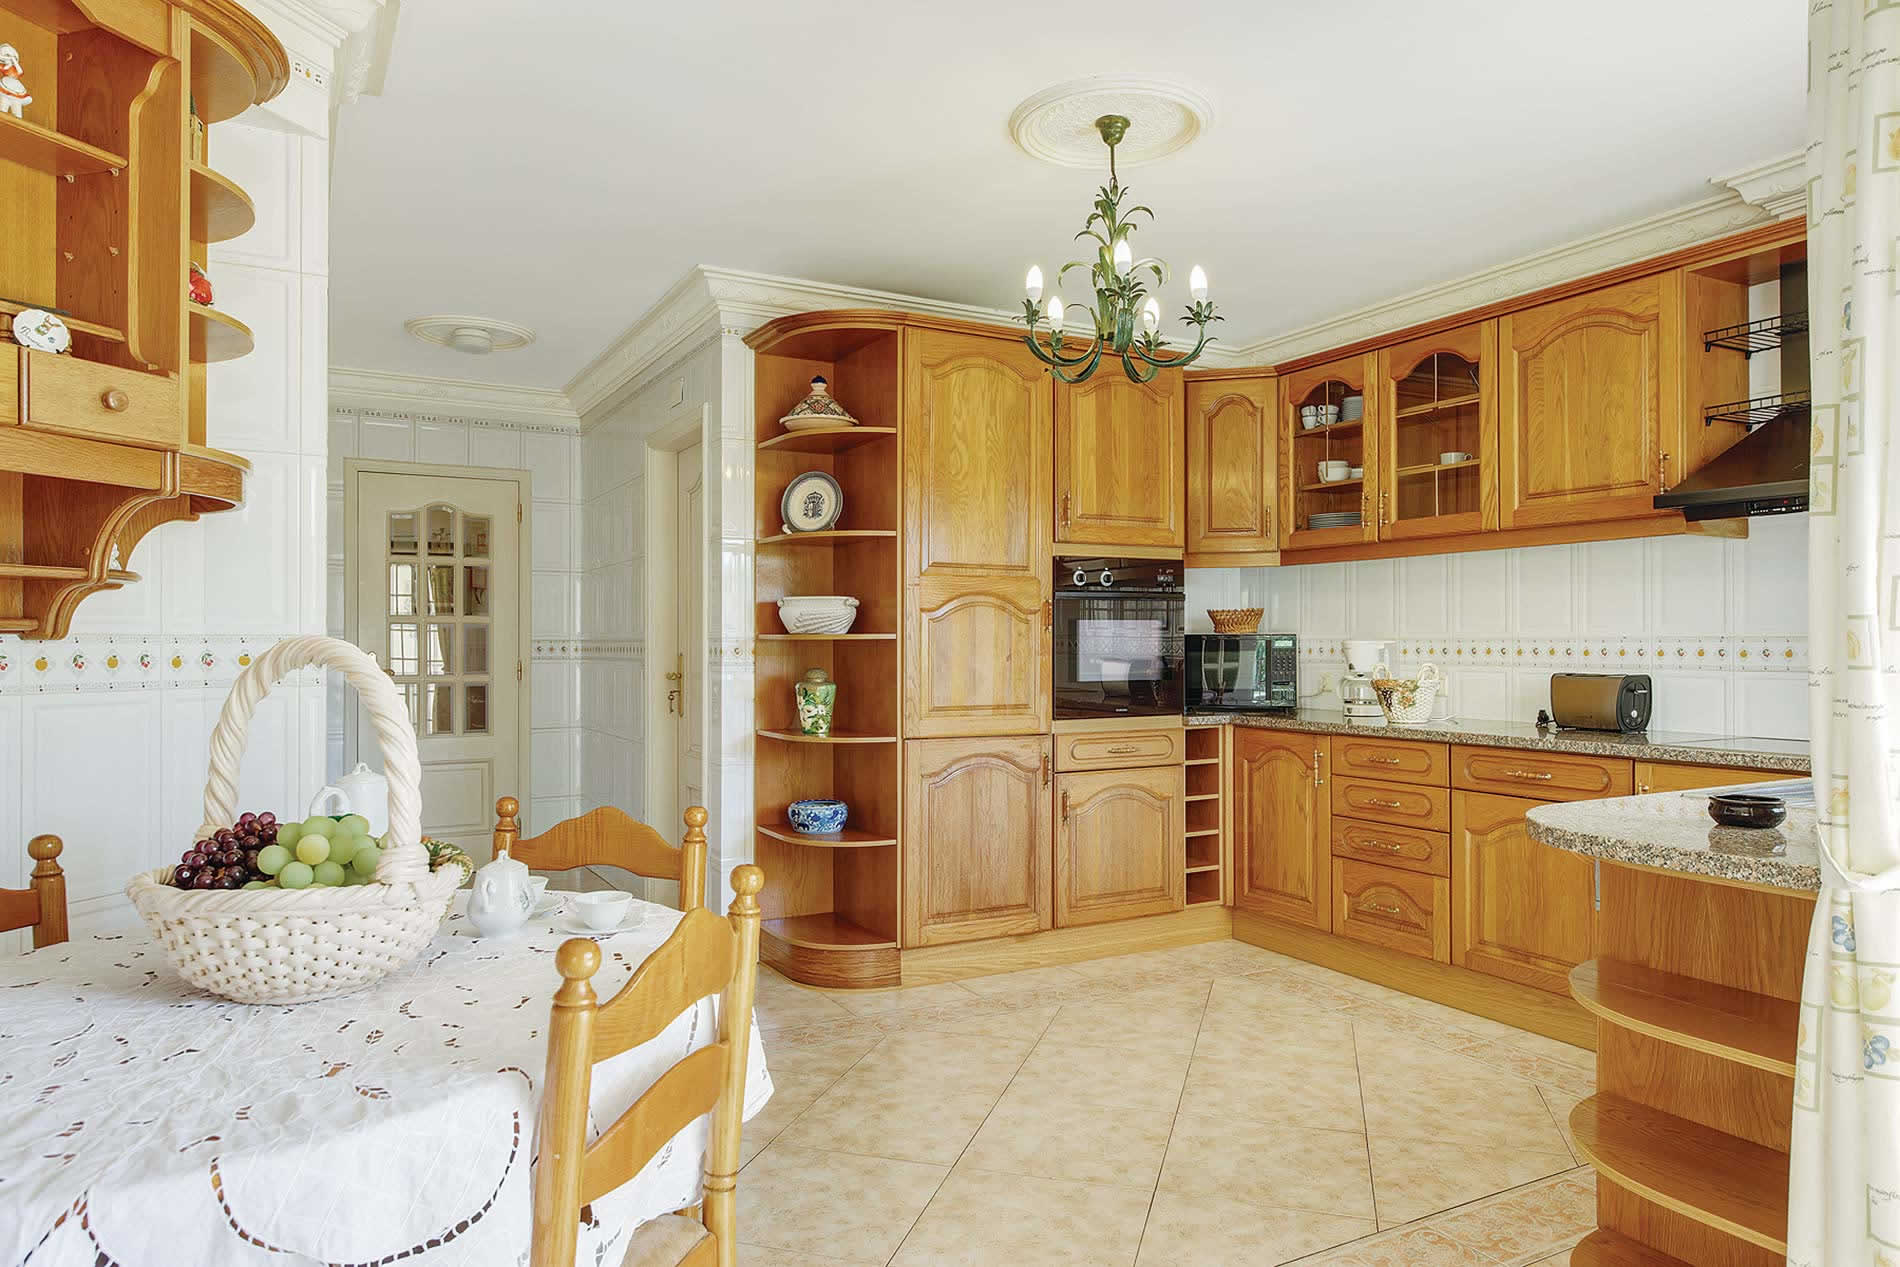 Villa Quinta da Vinha in Gale, Algarve - sleeps 8 people